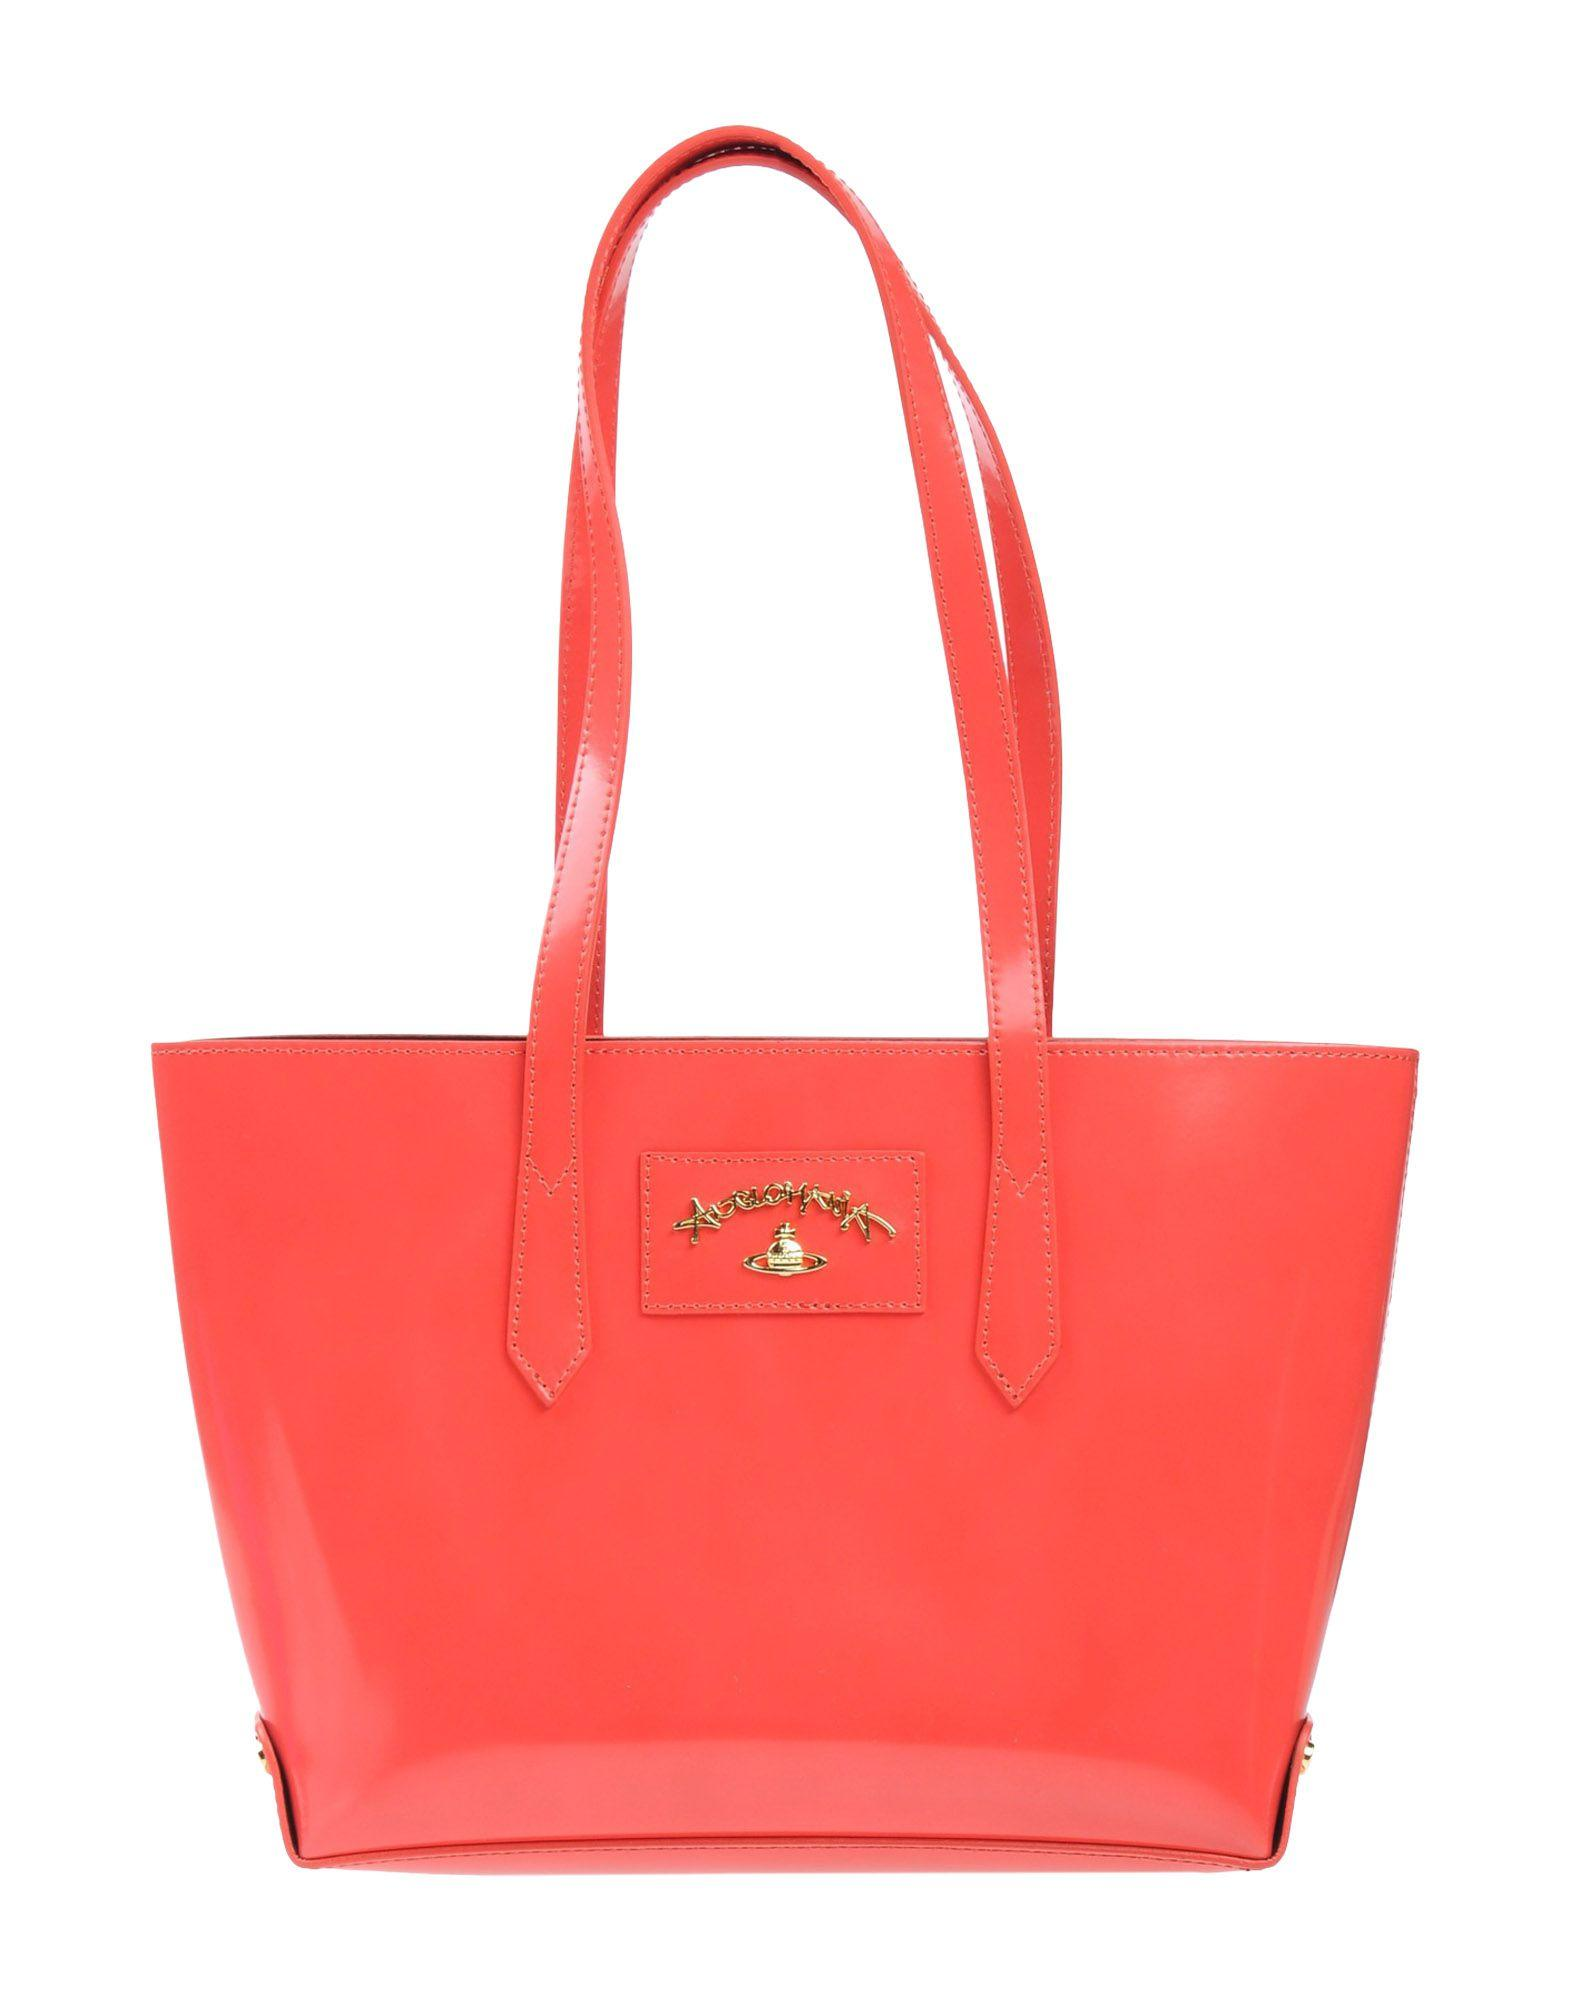 a1e326f2c0 Vivienne Westwood Anglomania Handbags In Light Pink | ModeSens